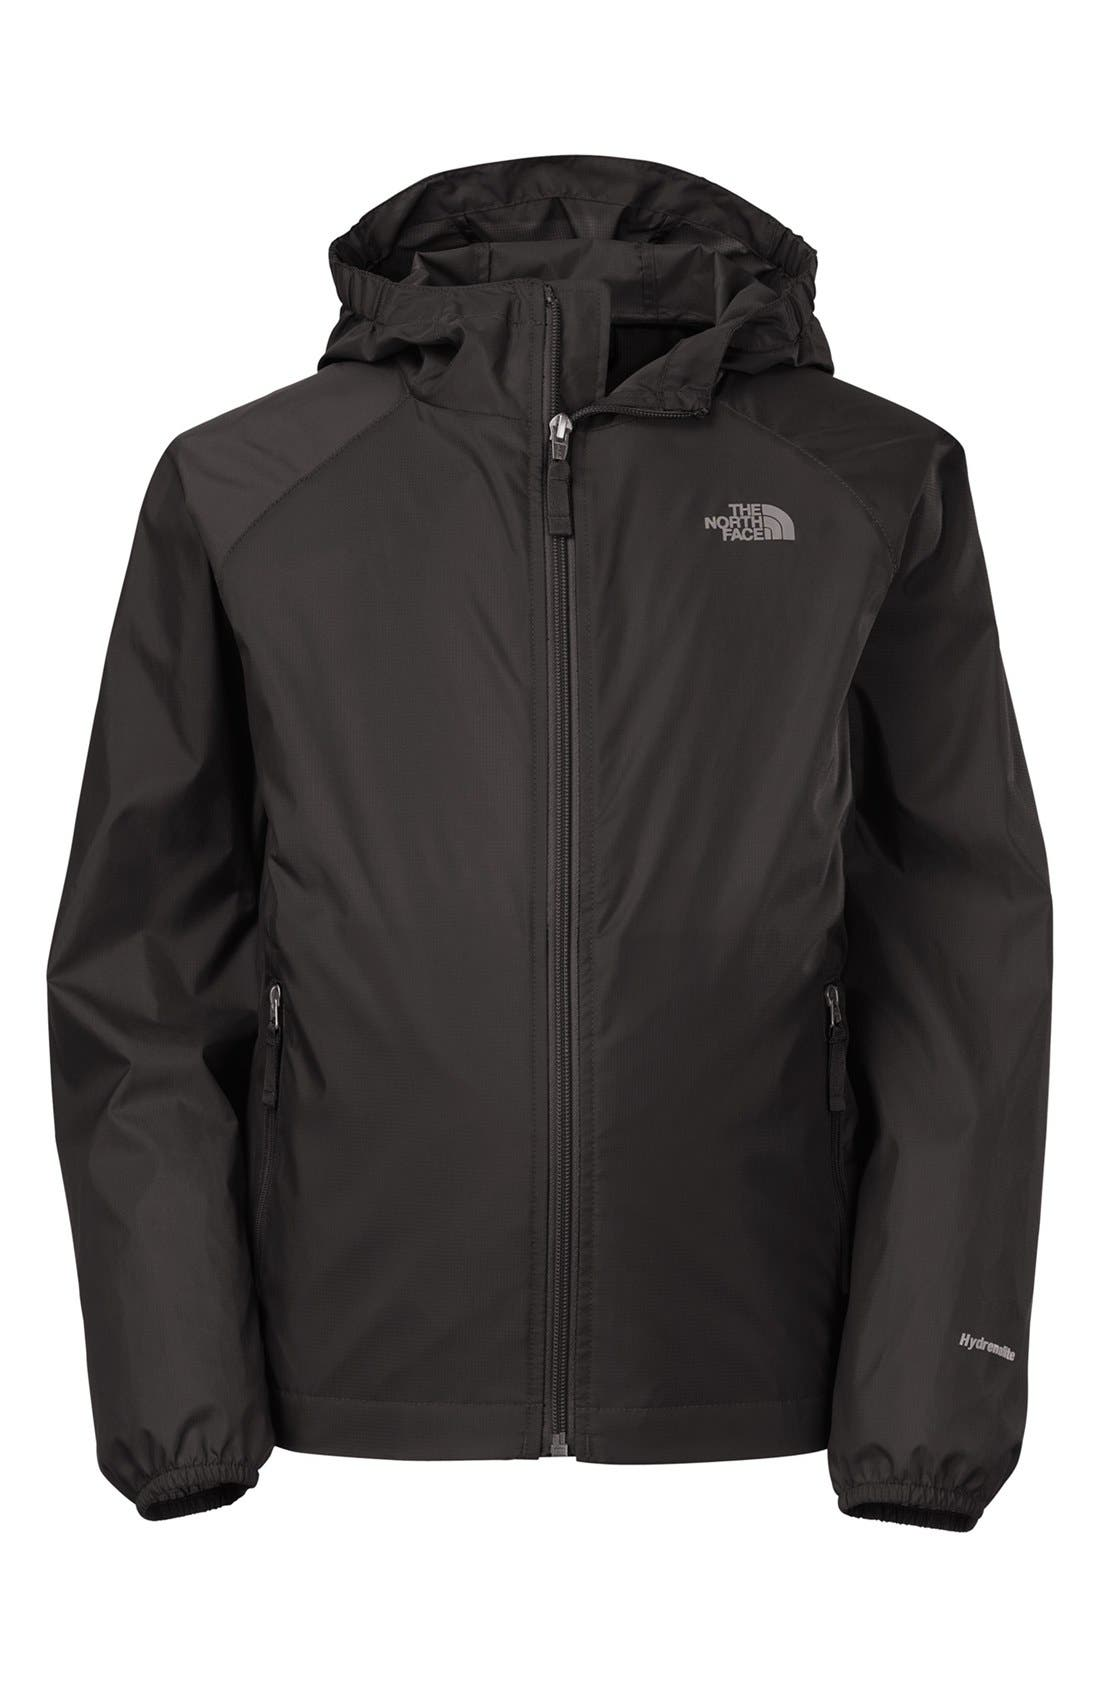 Main Image - The North Face 'Altimont' Windbreaker Hoodie (Little Boys & Big Boys)